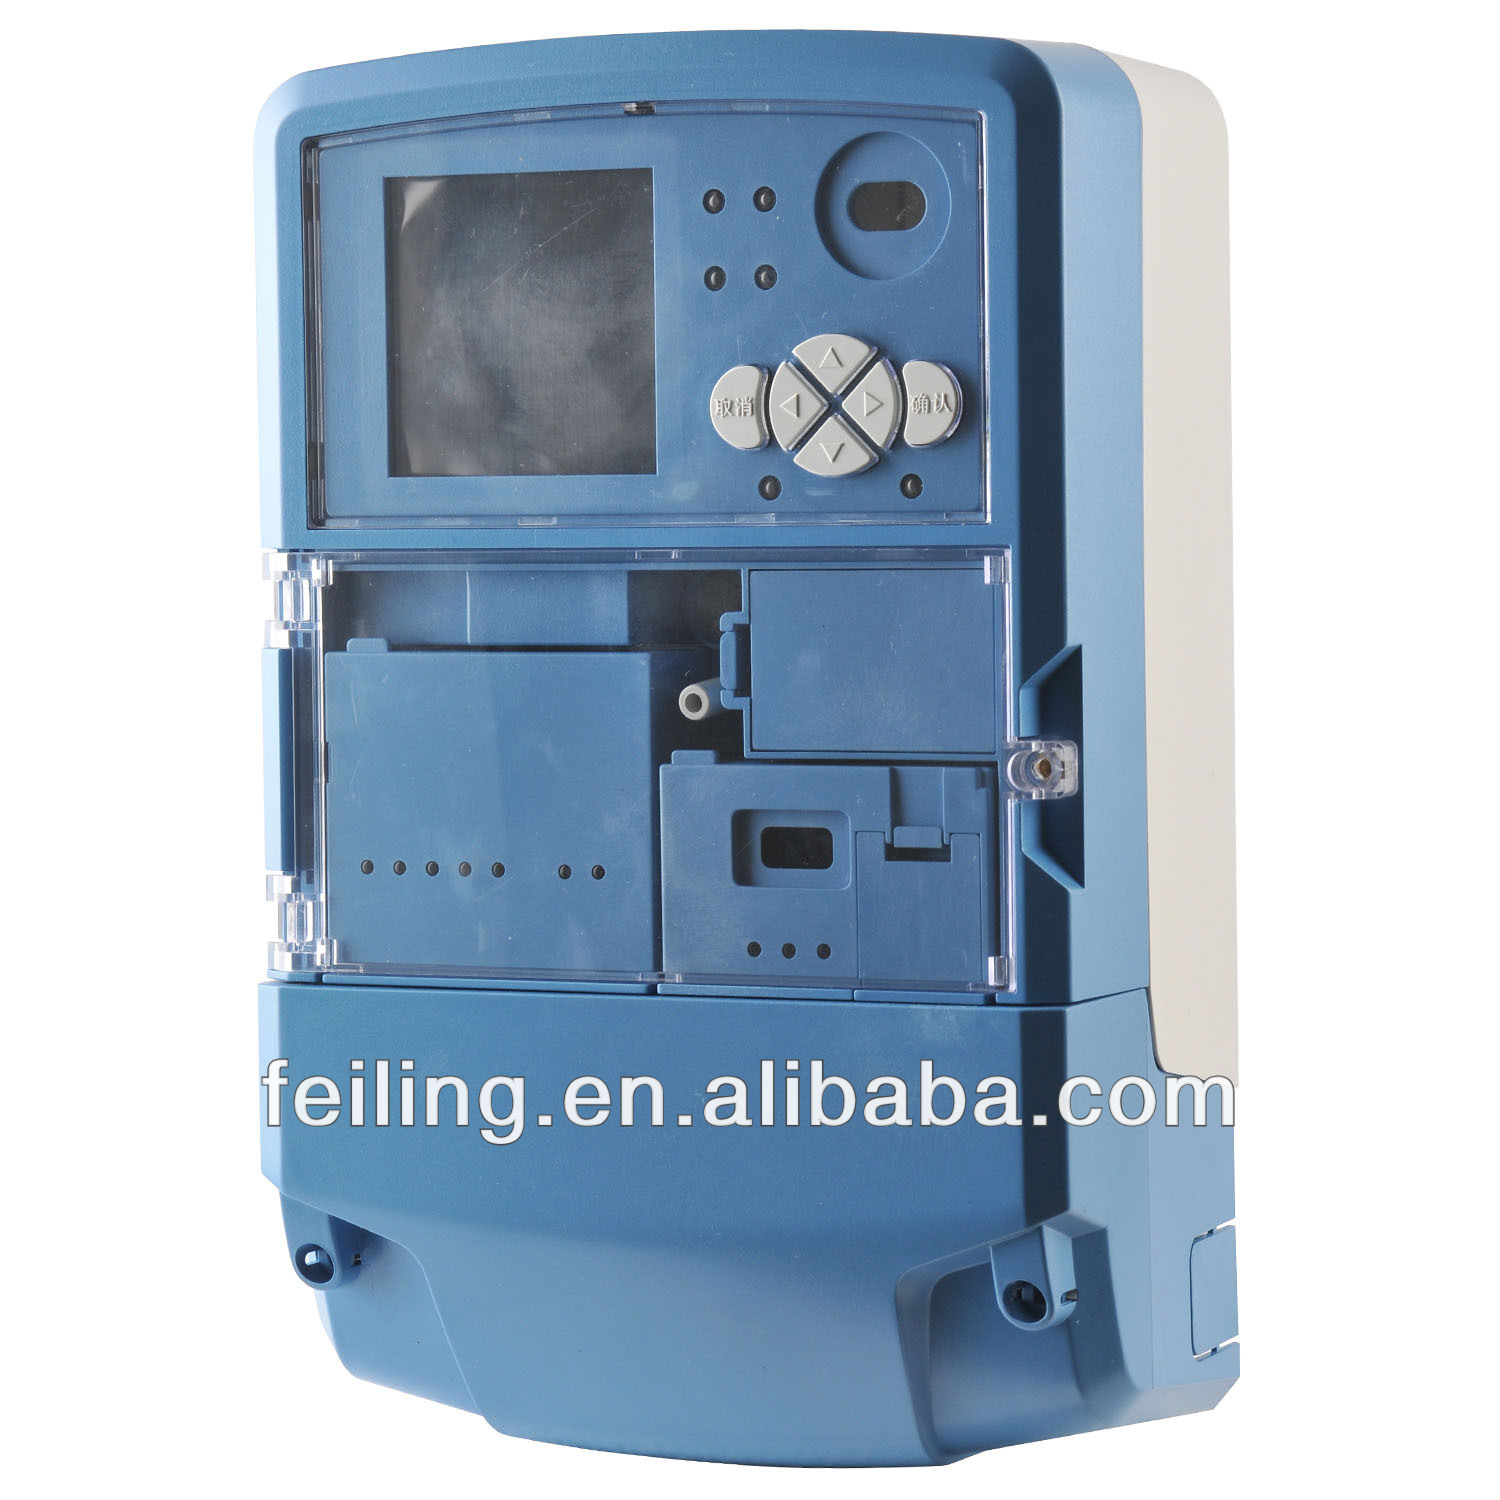 China Electric Meter Case Terminals, China Electric Meter Case ...